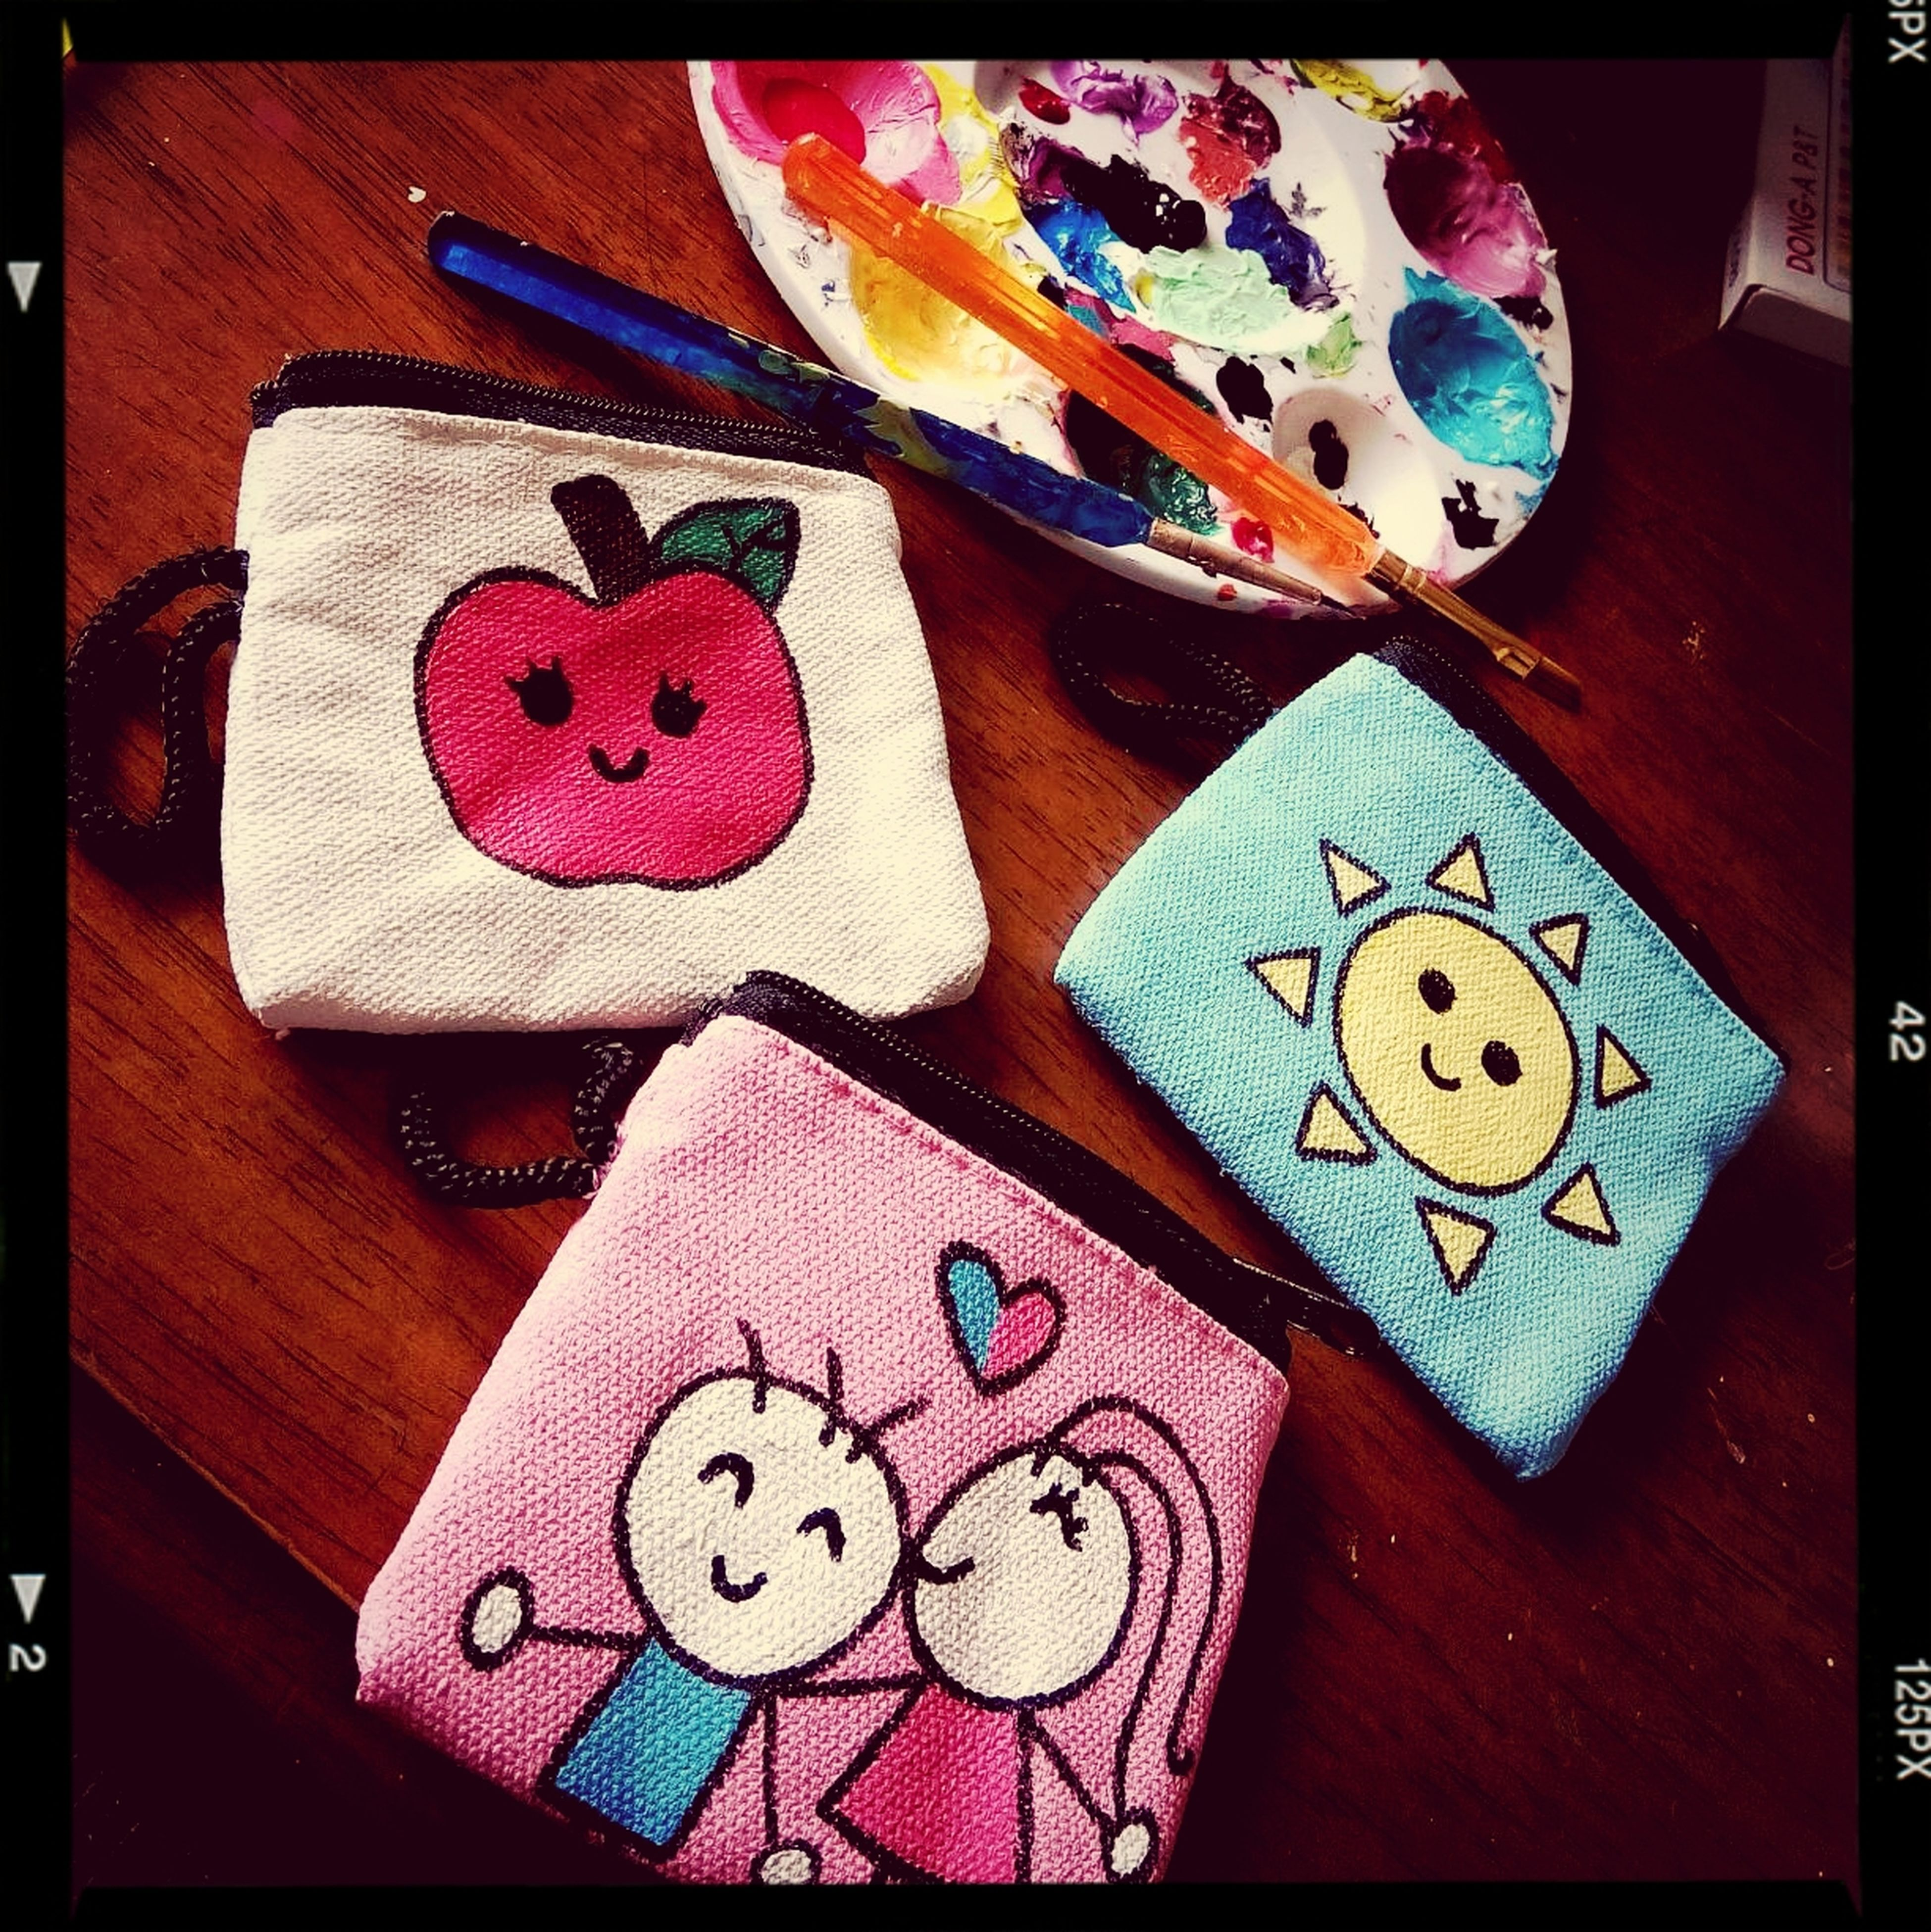 my new hobby. I love Art Does it look Girly ? Mini Pouches Coin Purses they are my customized designs. Planning to make a business from it. ? #handmade